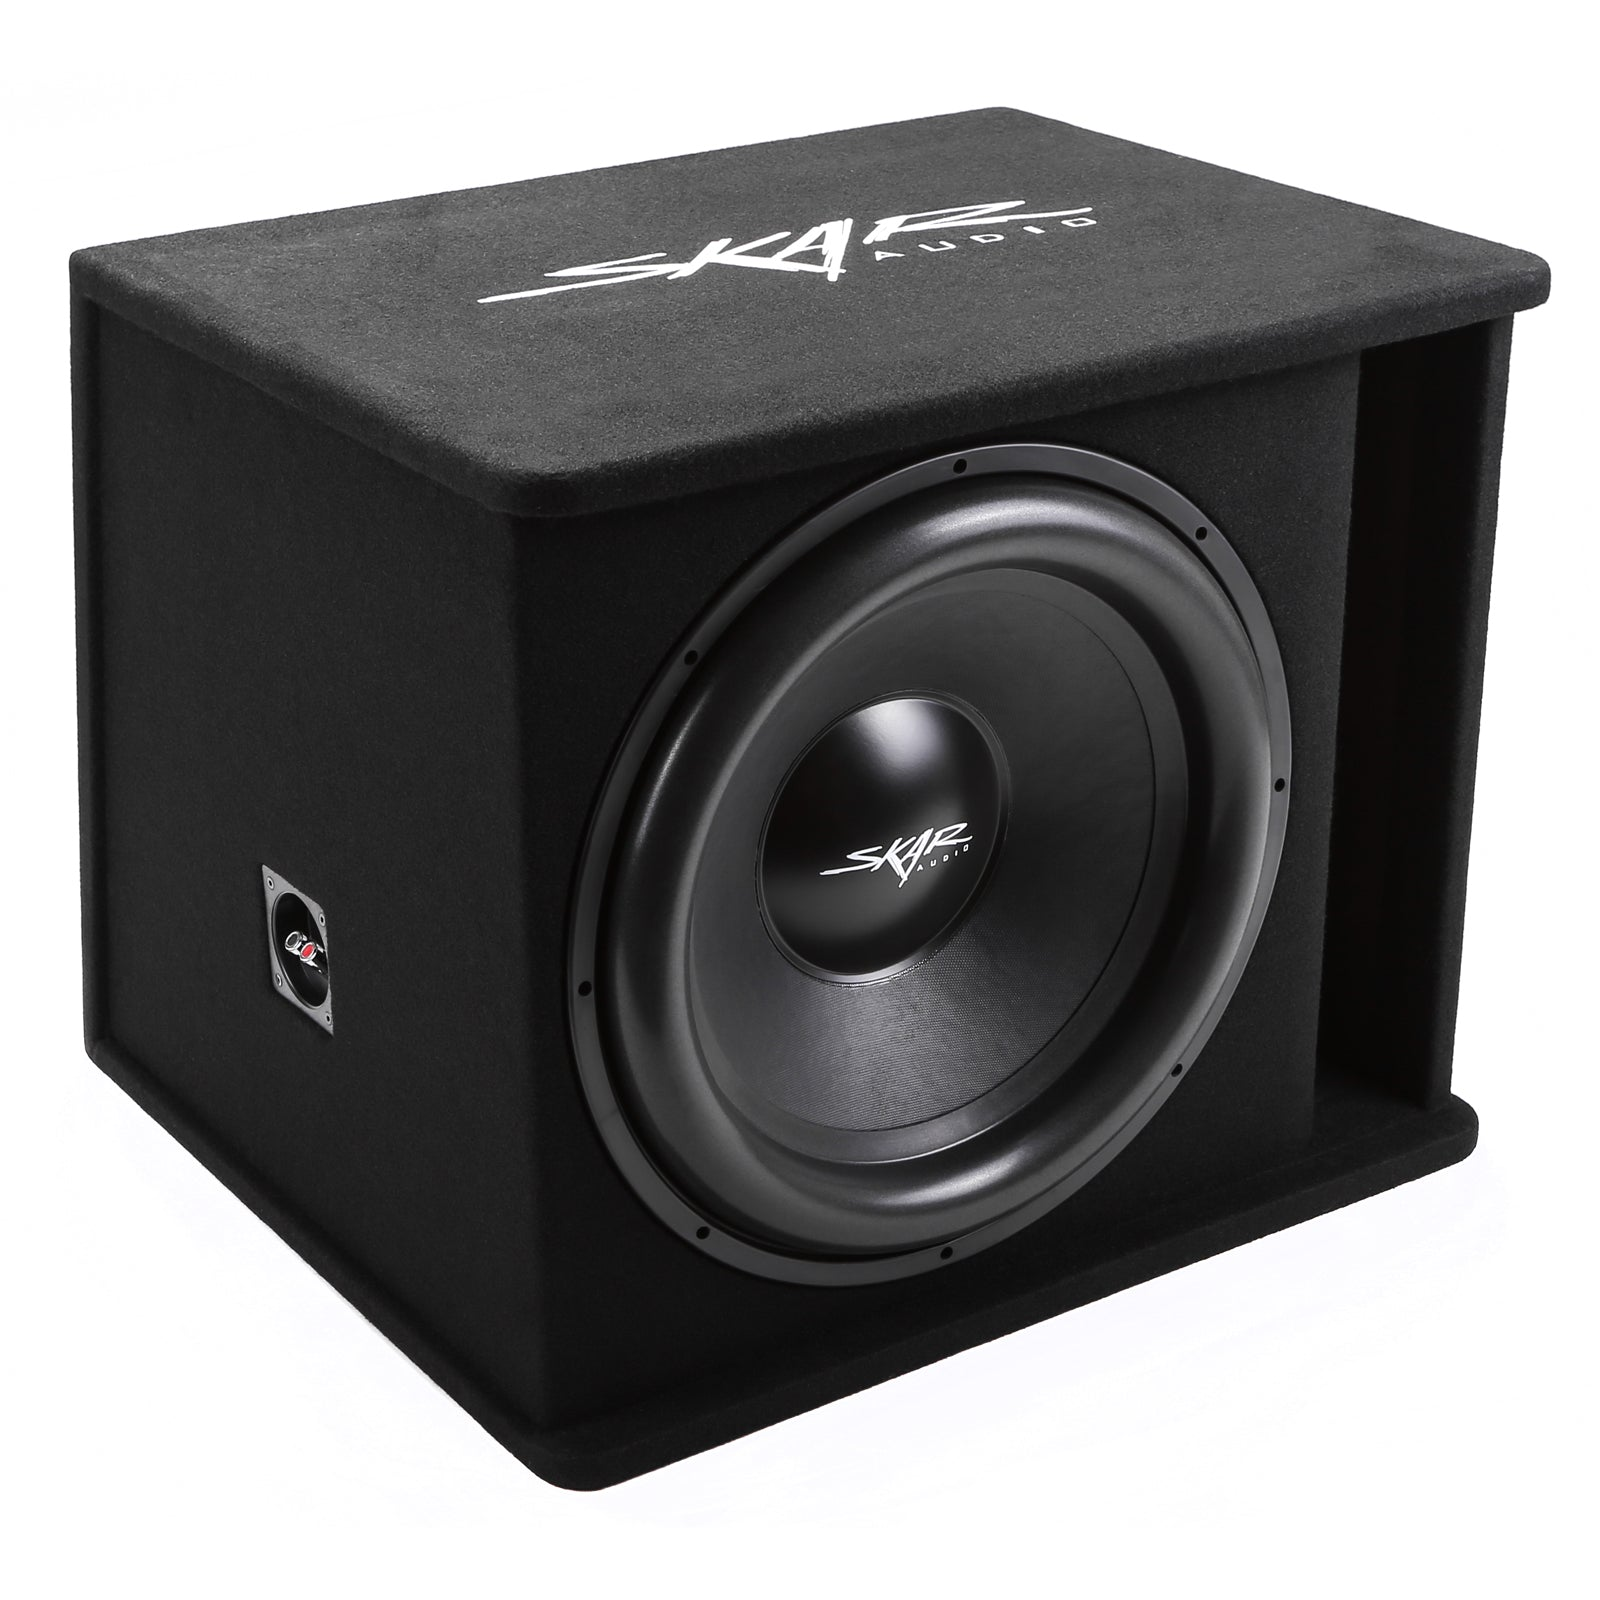 "Skar Audio SDR-1X18D2 Single 18"" SDR Loaded Vented Subwoofer Enclosure - Angle View"